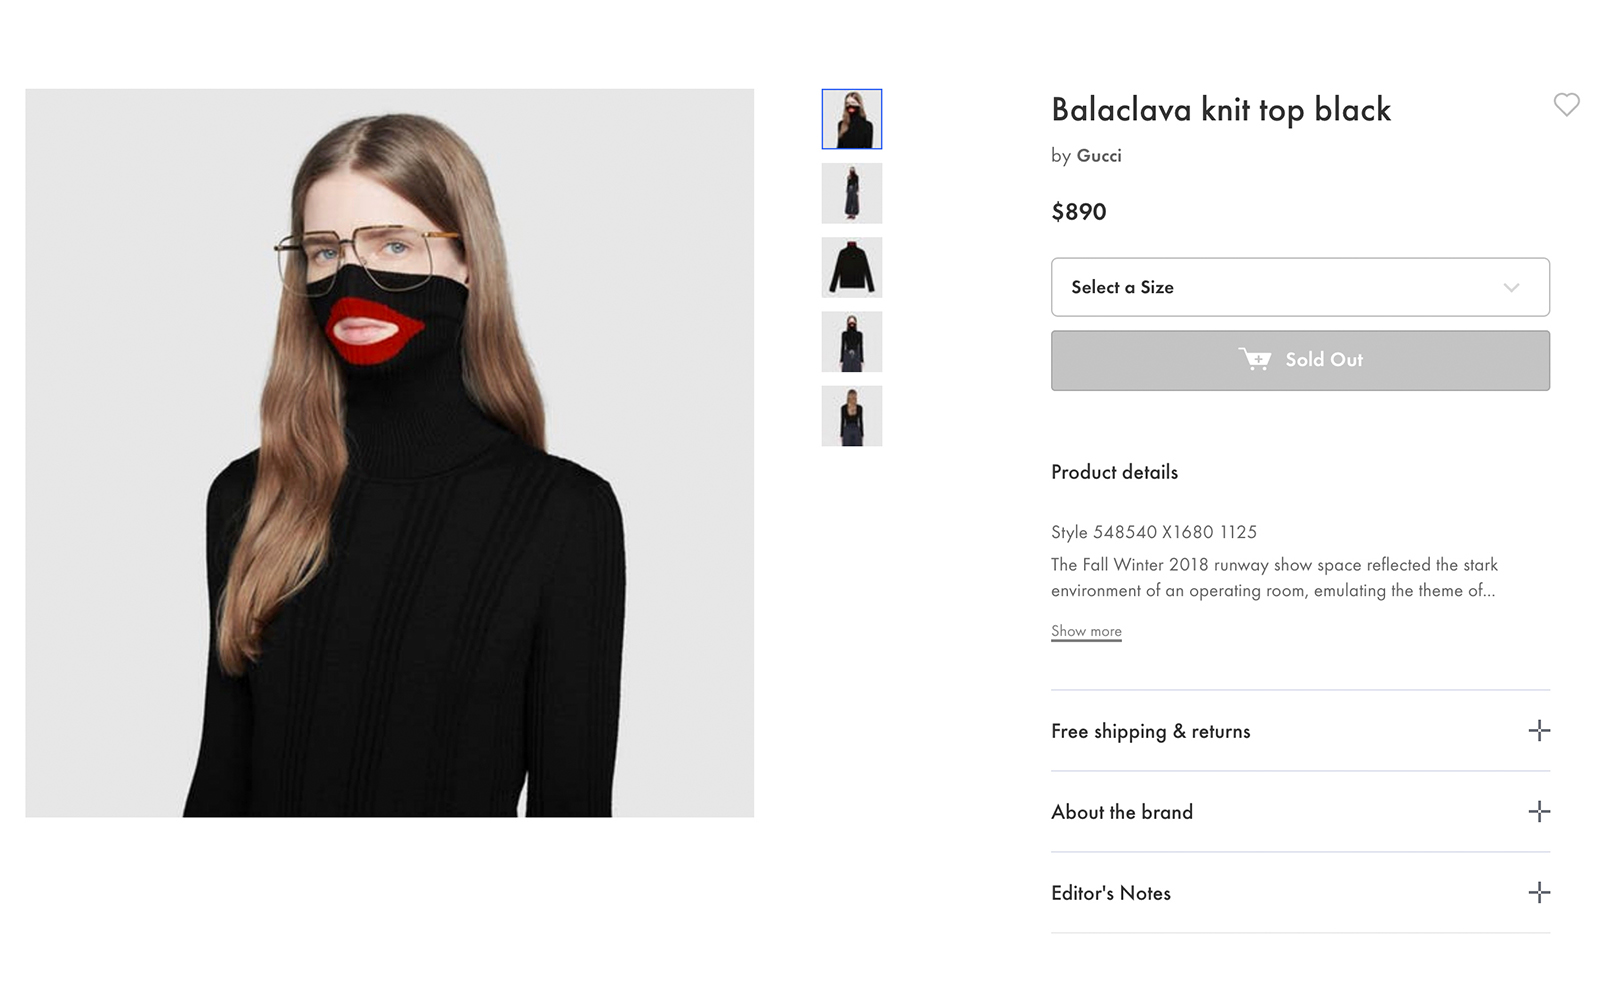 fc26e55e252 Gucci pulls  blackface sweater  from stores after complaints